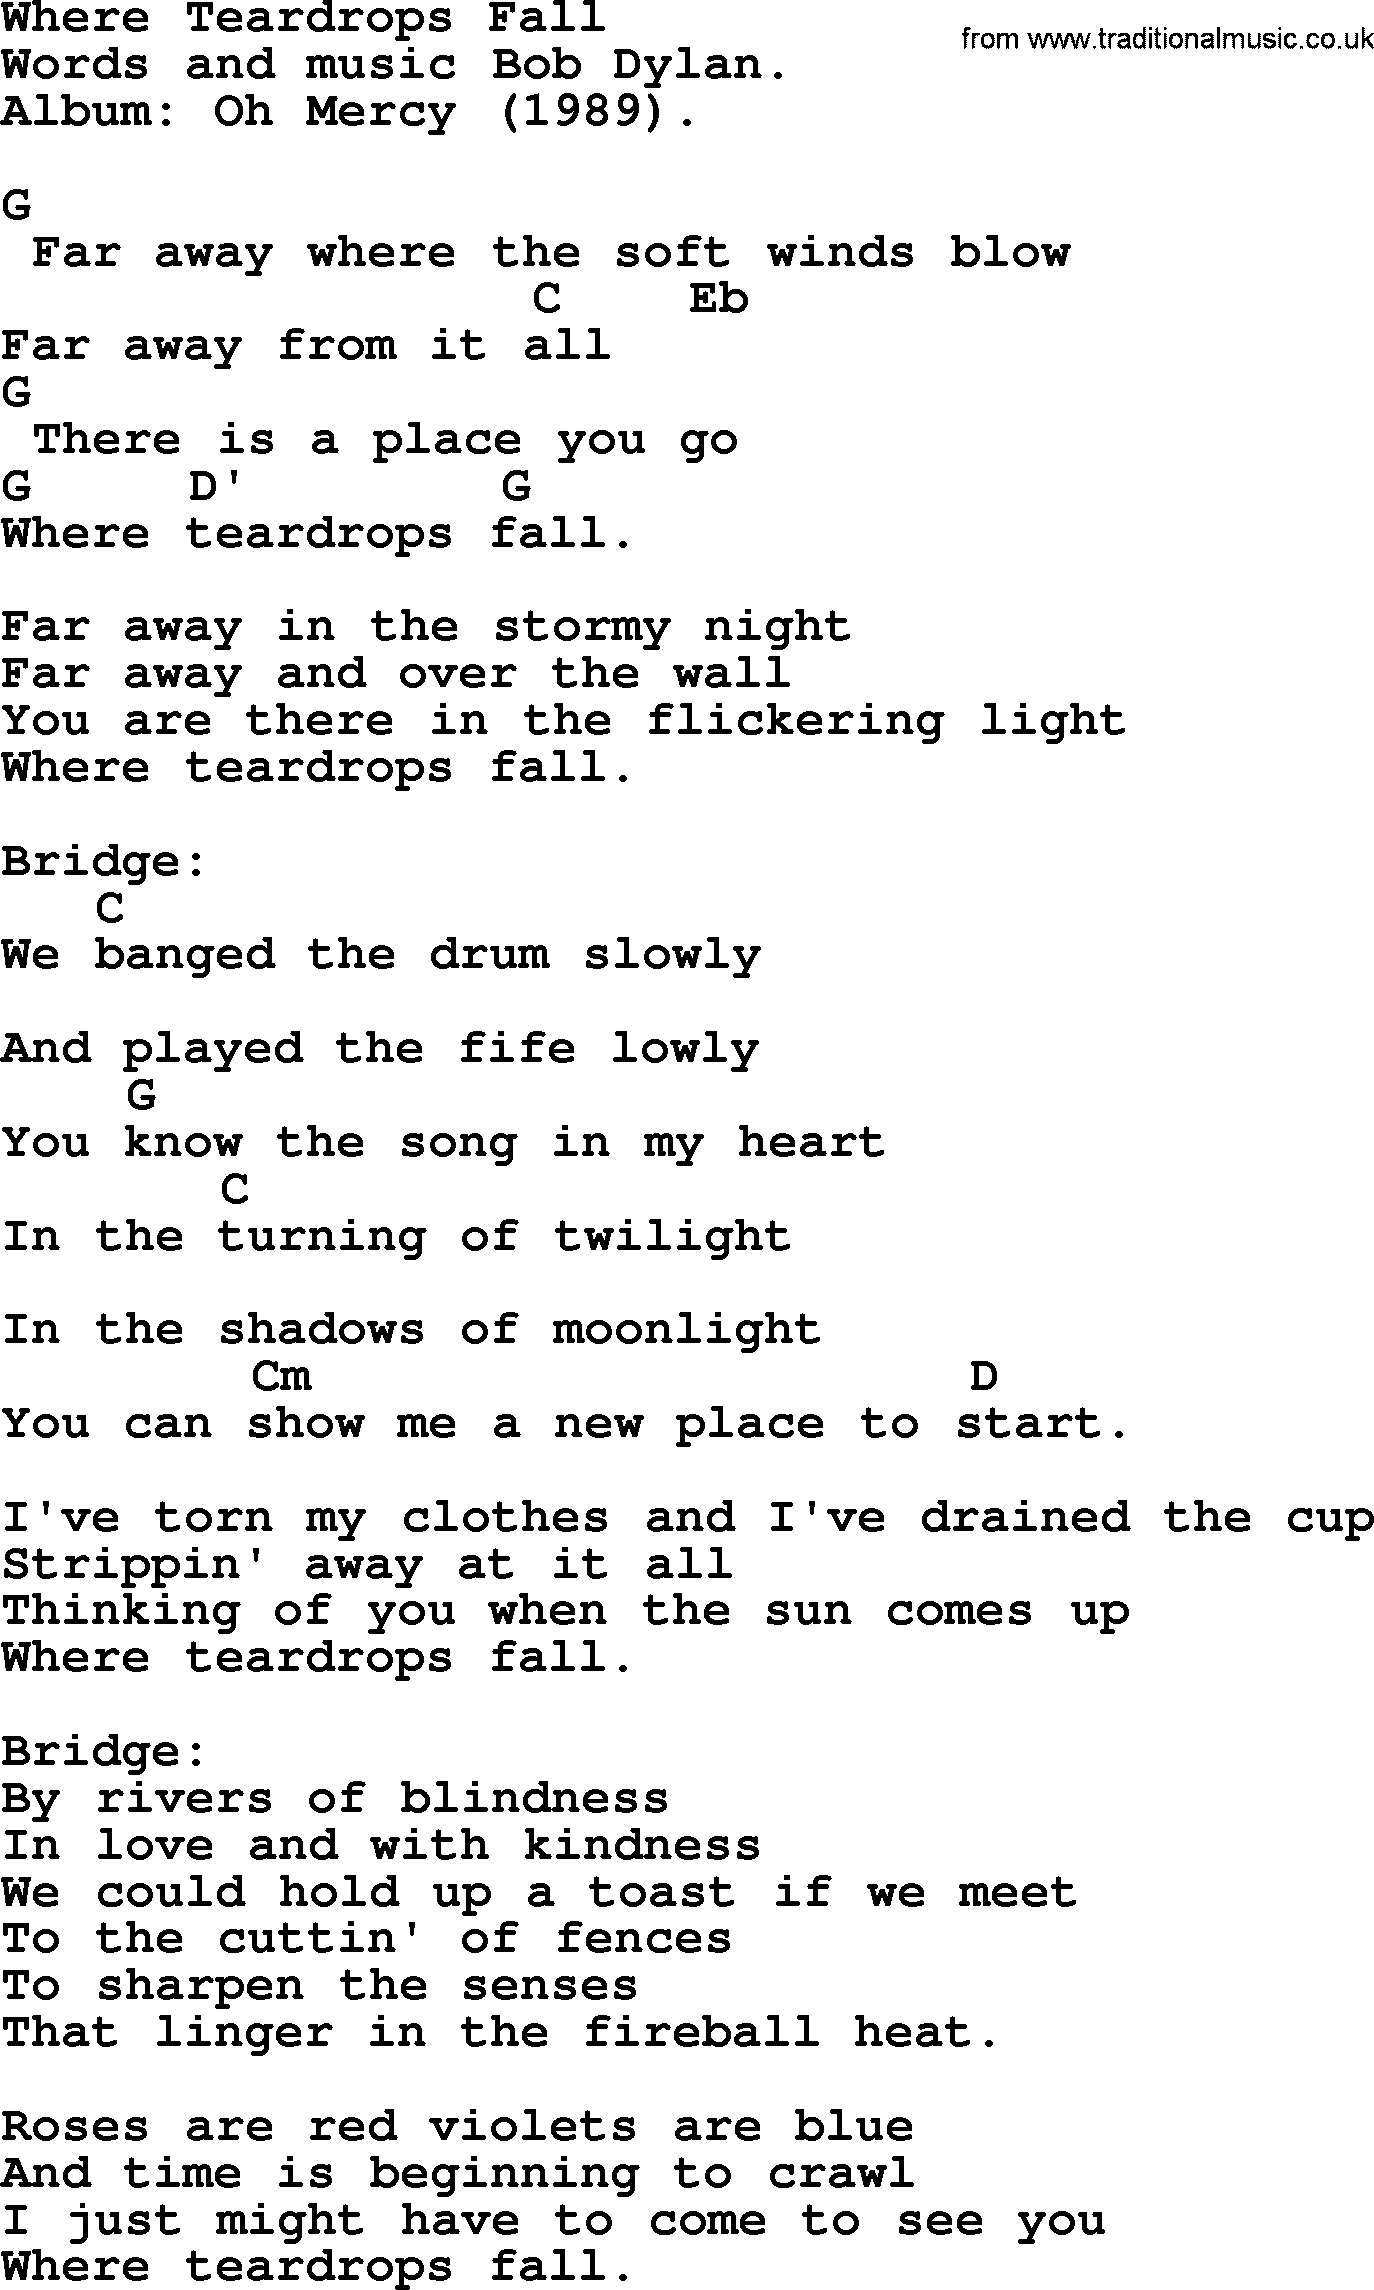 Bob Dylan Song Where Teardrops Fall Lyrics And Chords